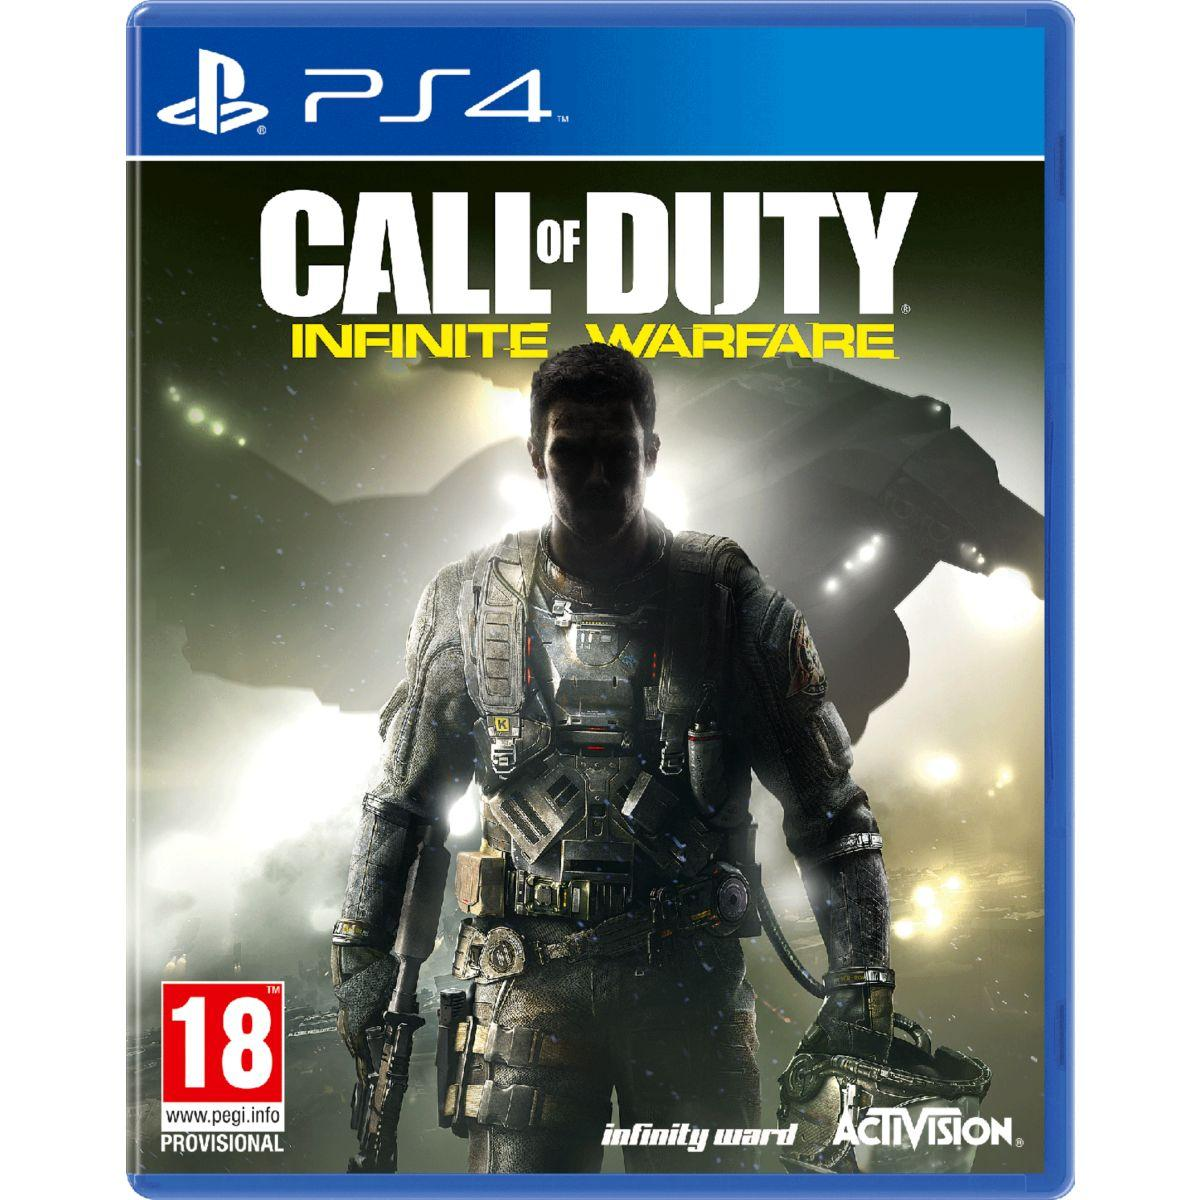 Jeu ps4 activision call of duty infinite warfare - 2% de remise immédiate avec le code : cool2 (photo)